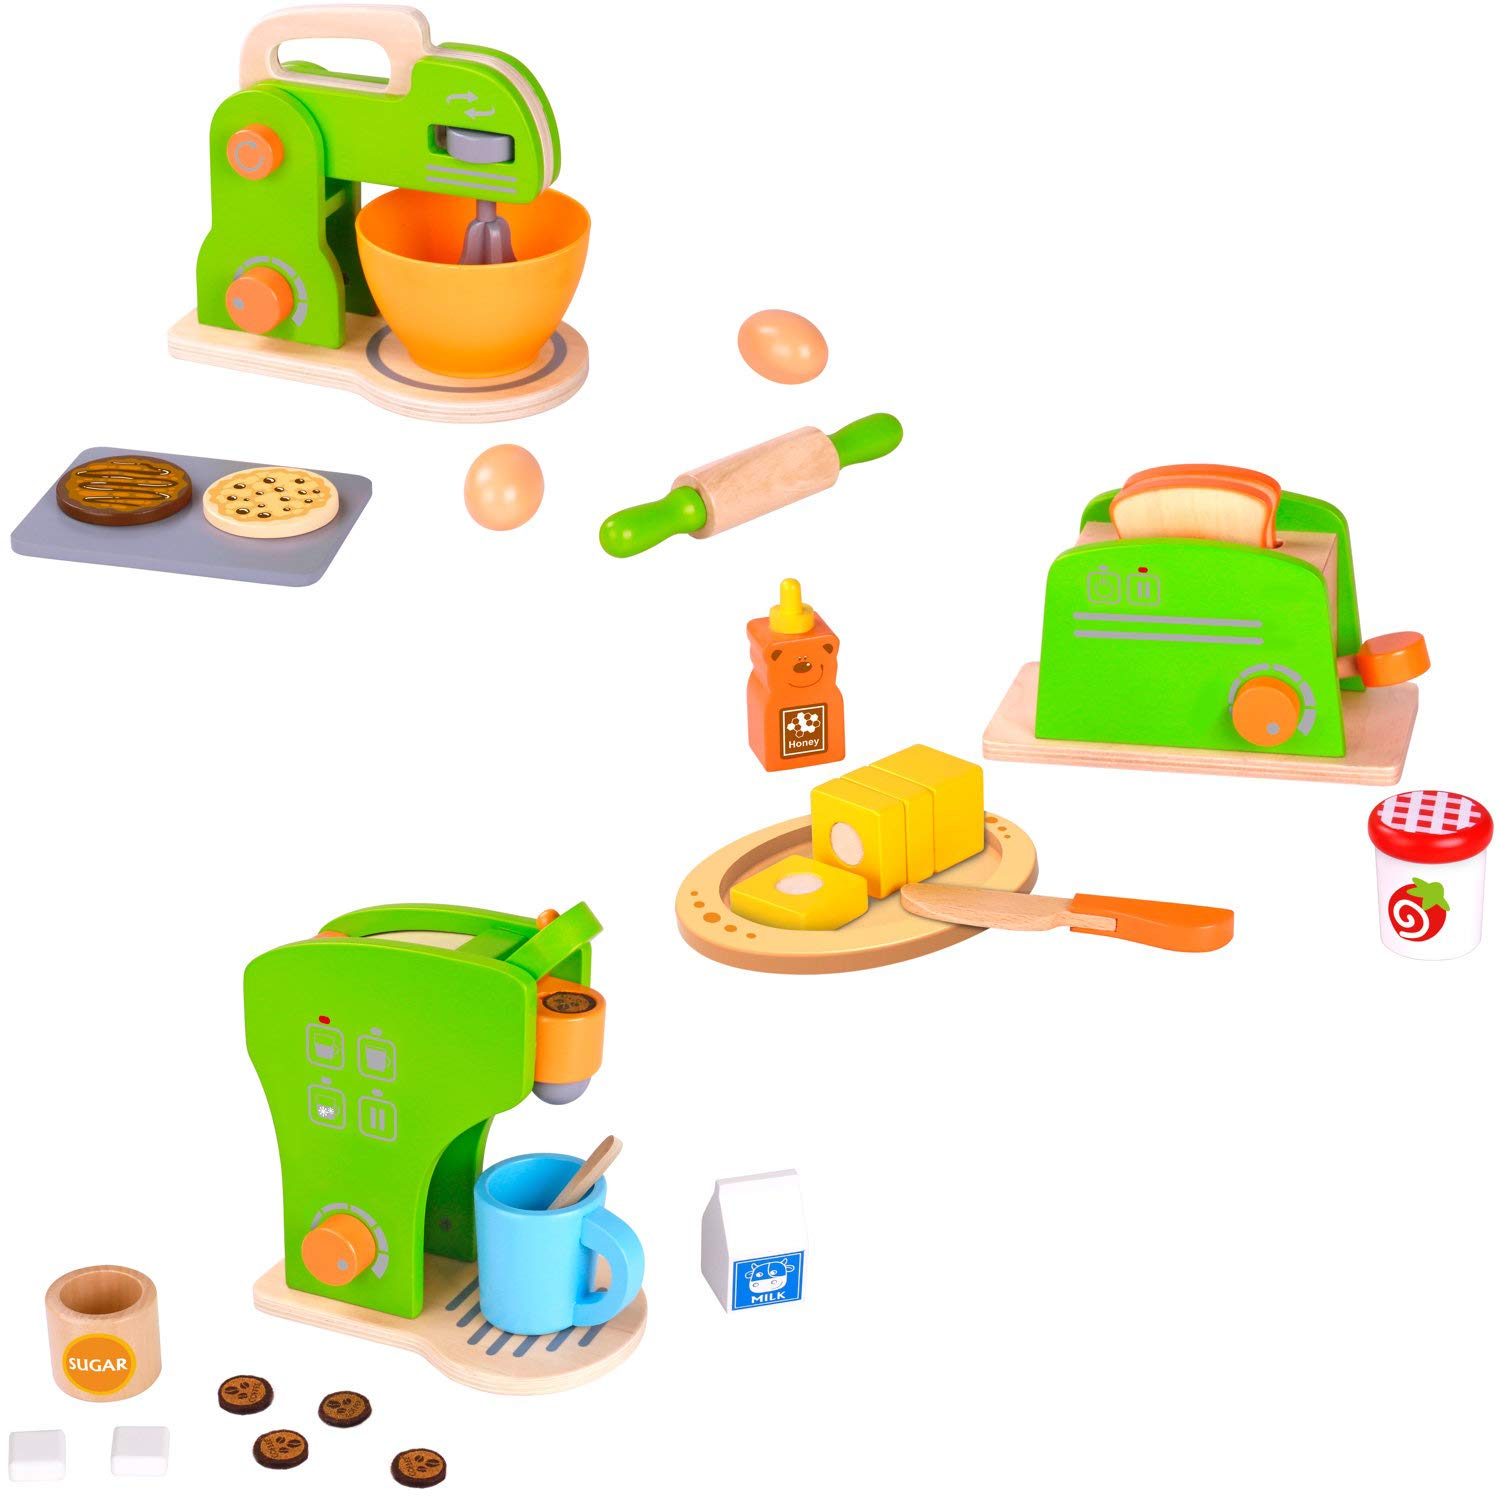 Pidoko Kids Toy Kitchen Accessories - 3 Pack Bundle - Pretend Play Appliances - Mixer, Toaster and Coffee Set (32 Pieces)